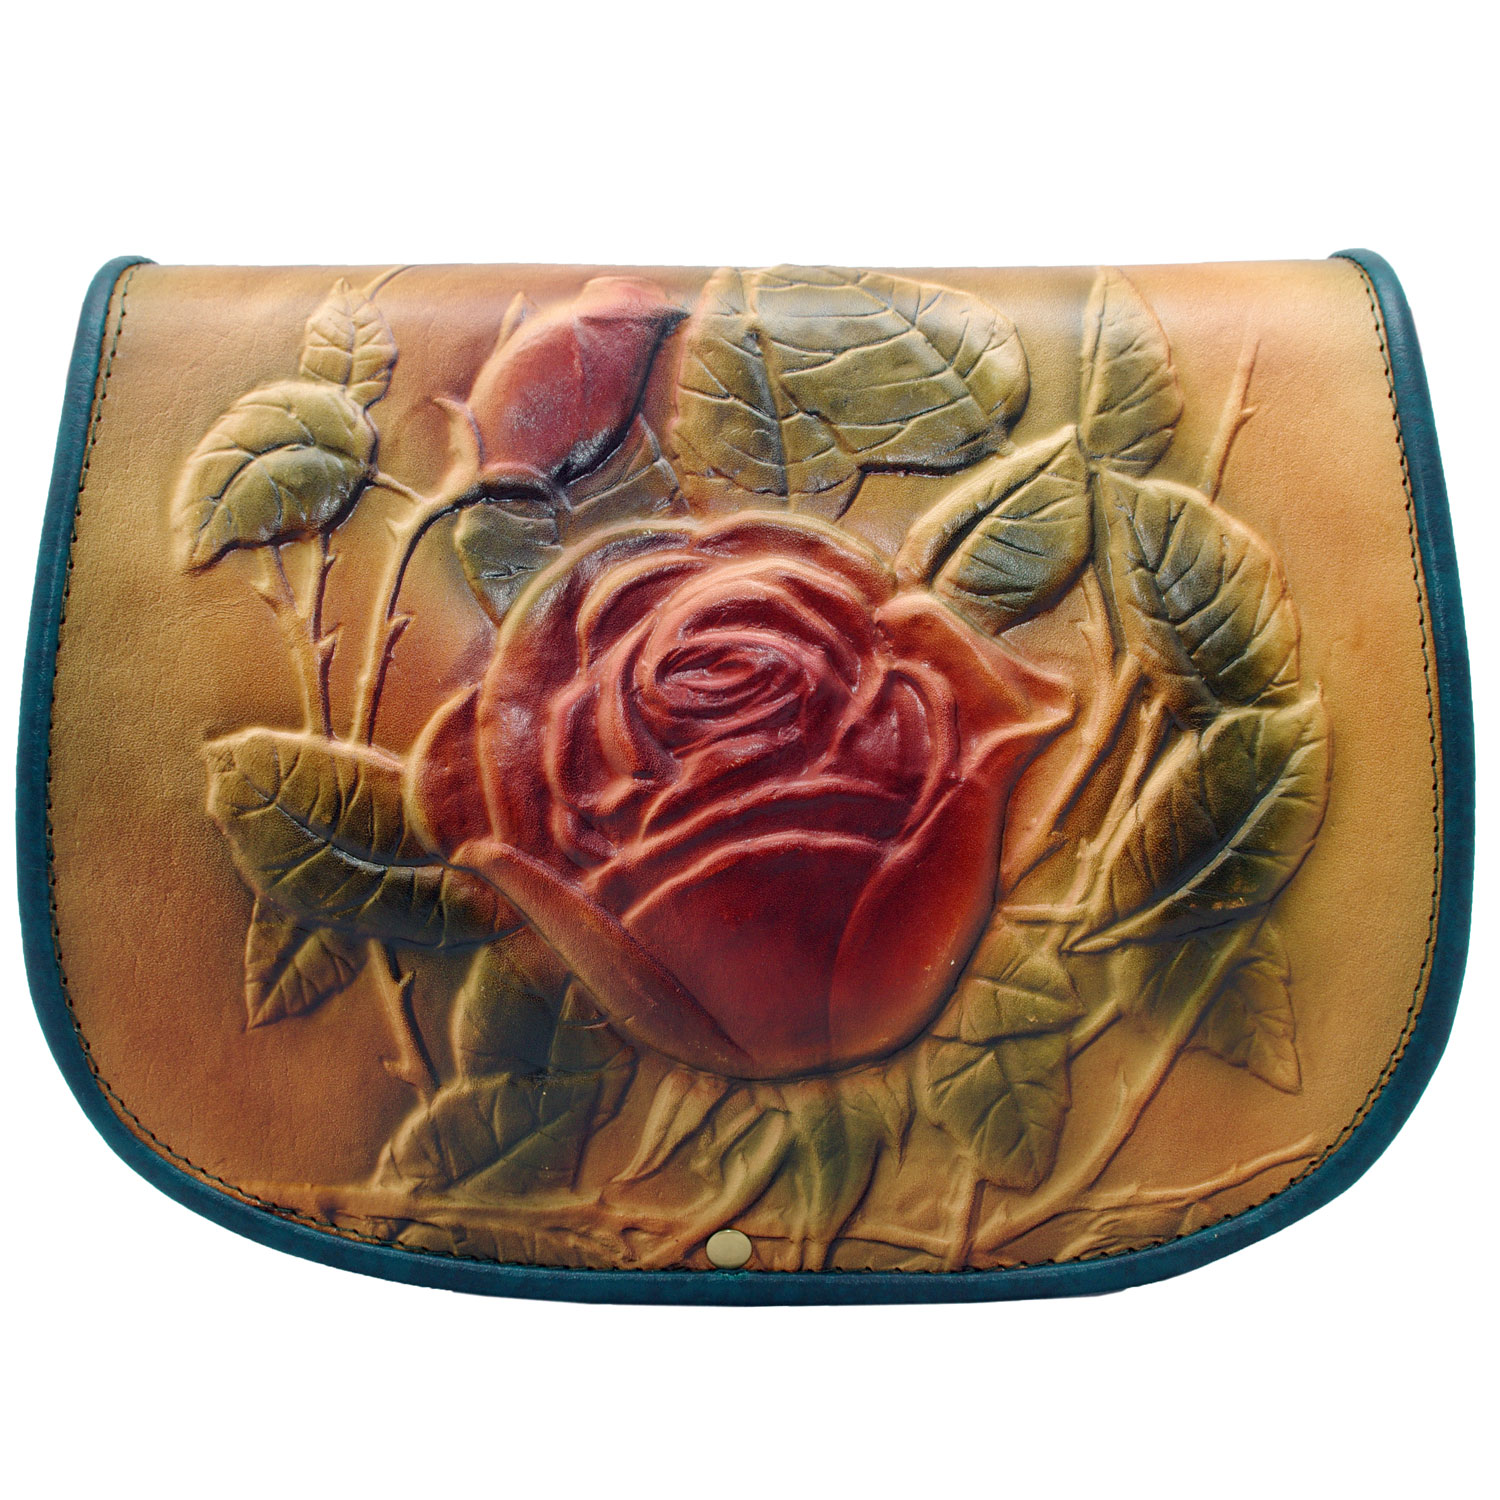 Brown and Red Rose Full Grain leather bag for women crossbody messenger style